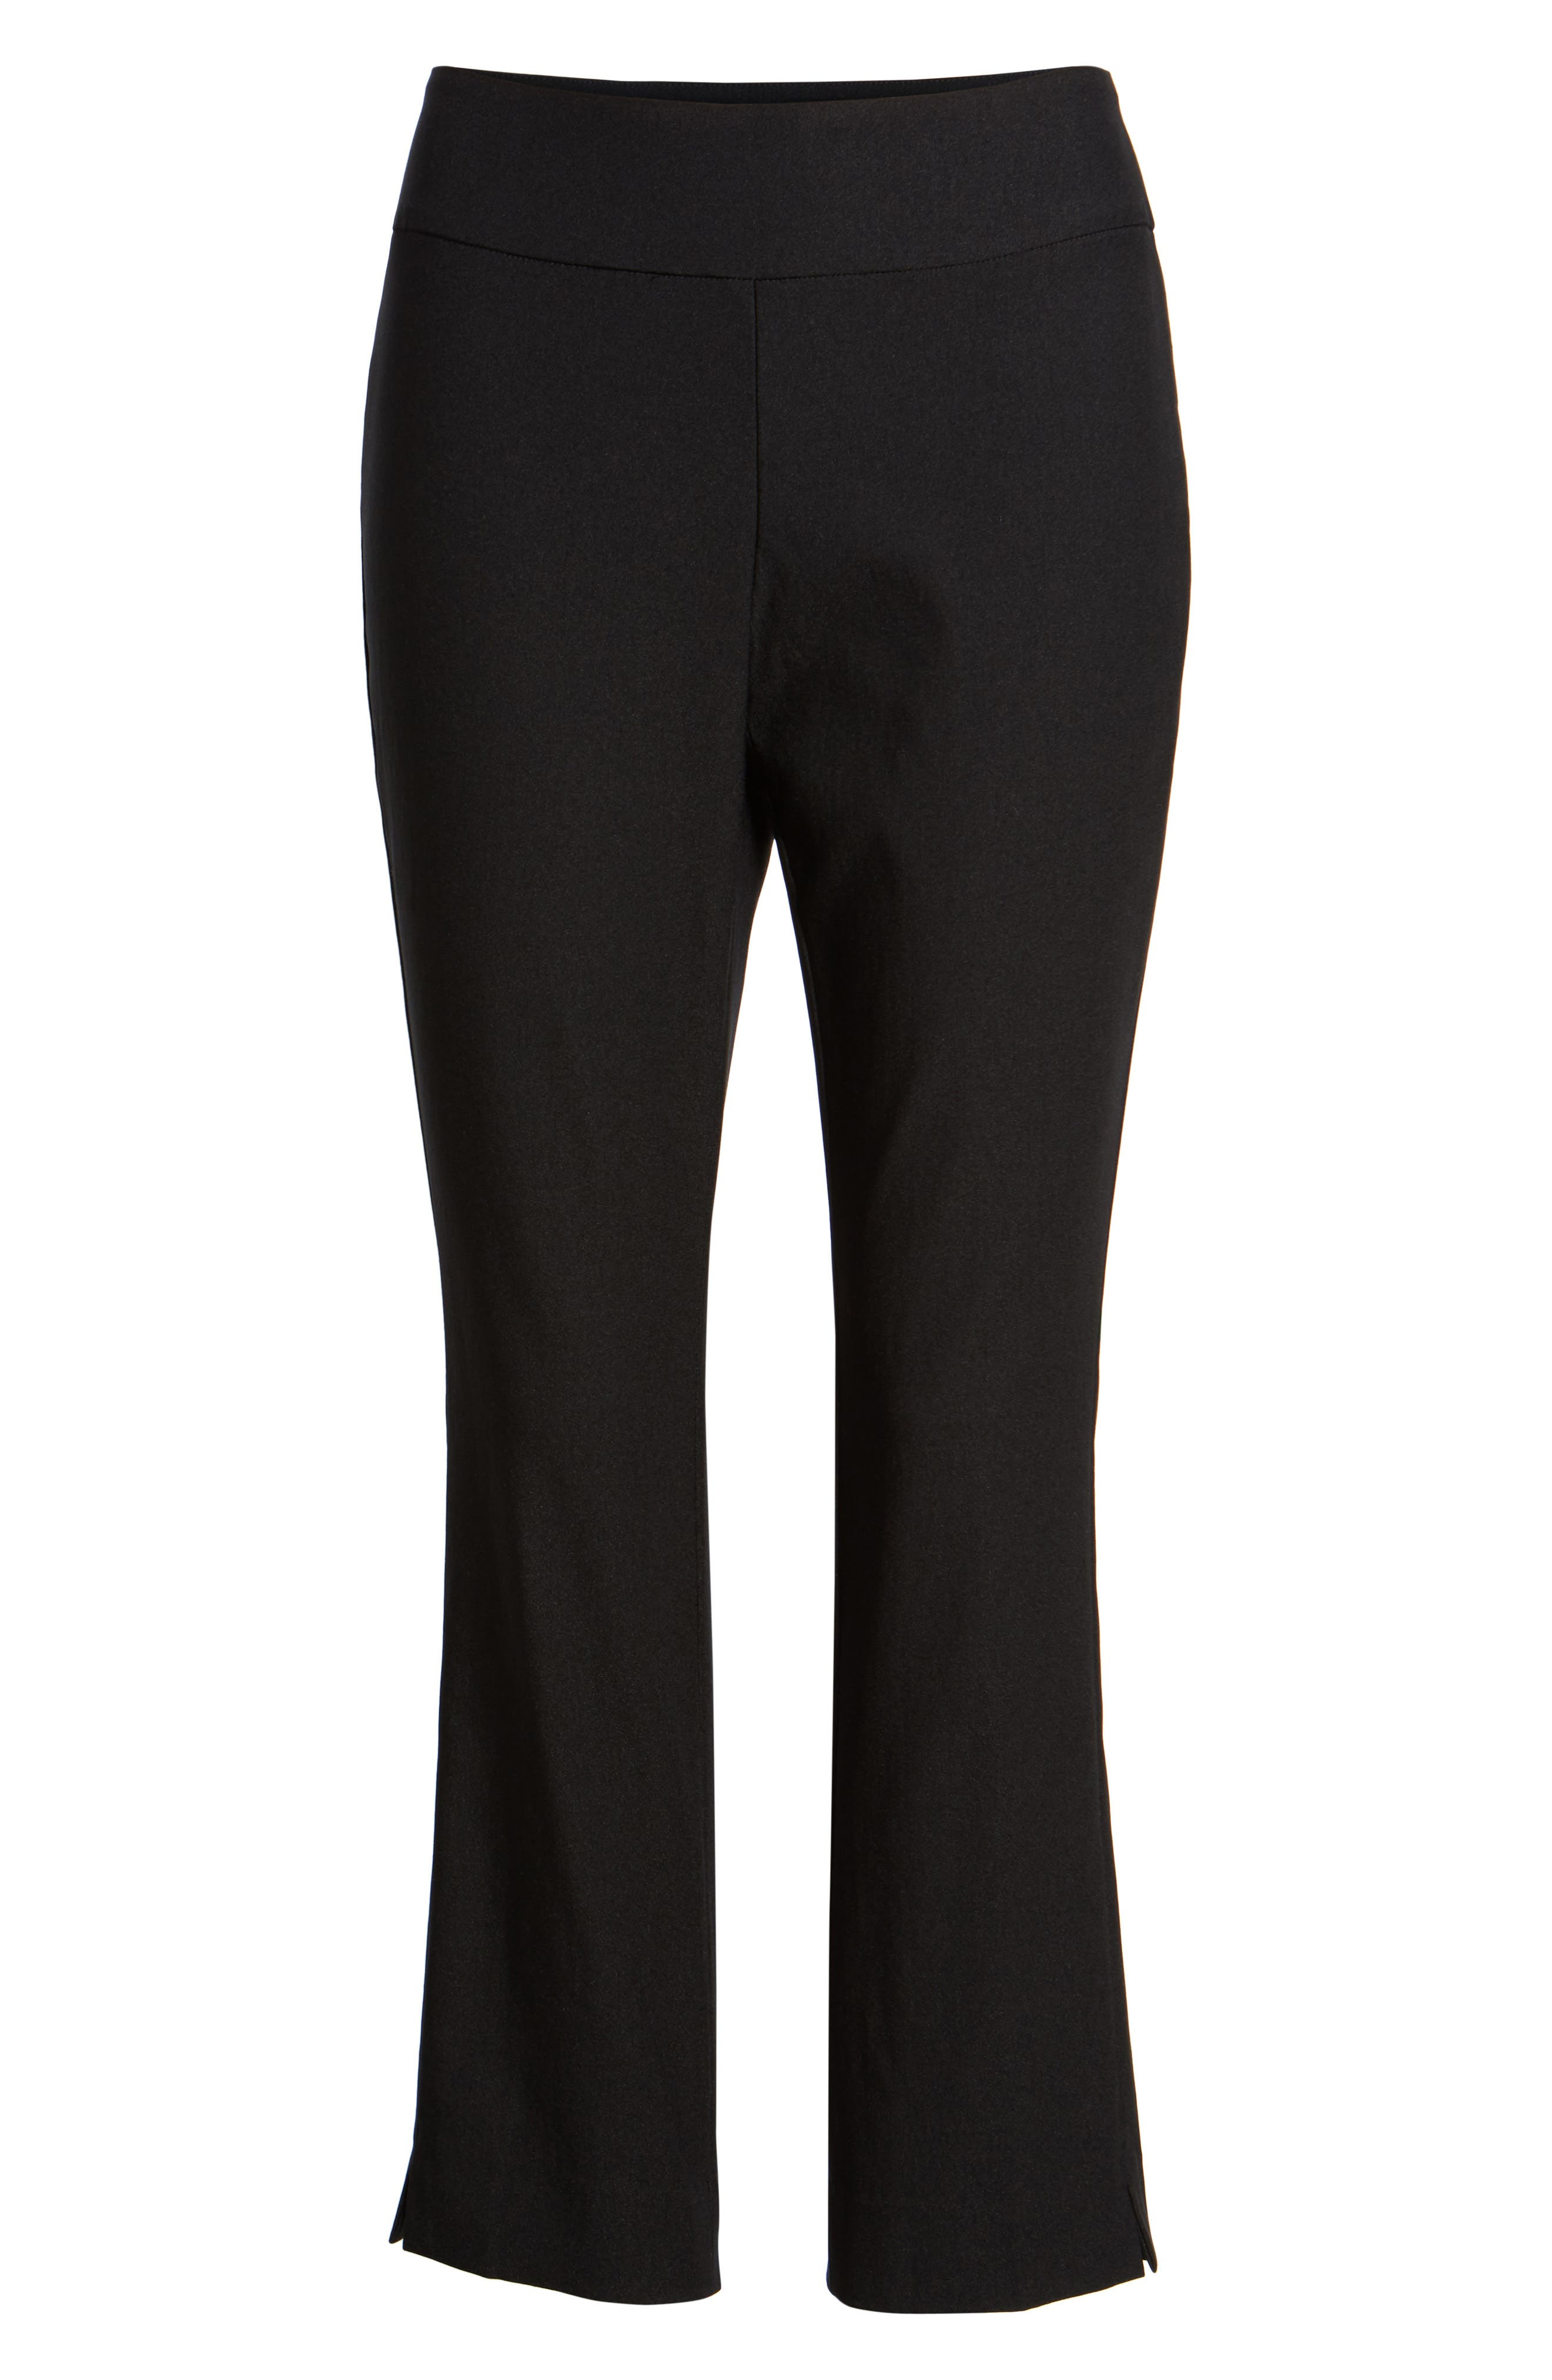 Wonder Stretch Crop Pants,                             Alternate thumbnail 6, color,                             Black Onyx